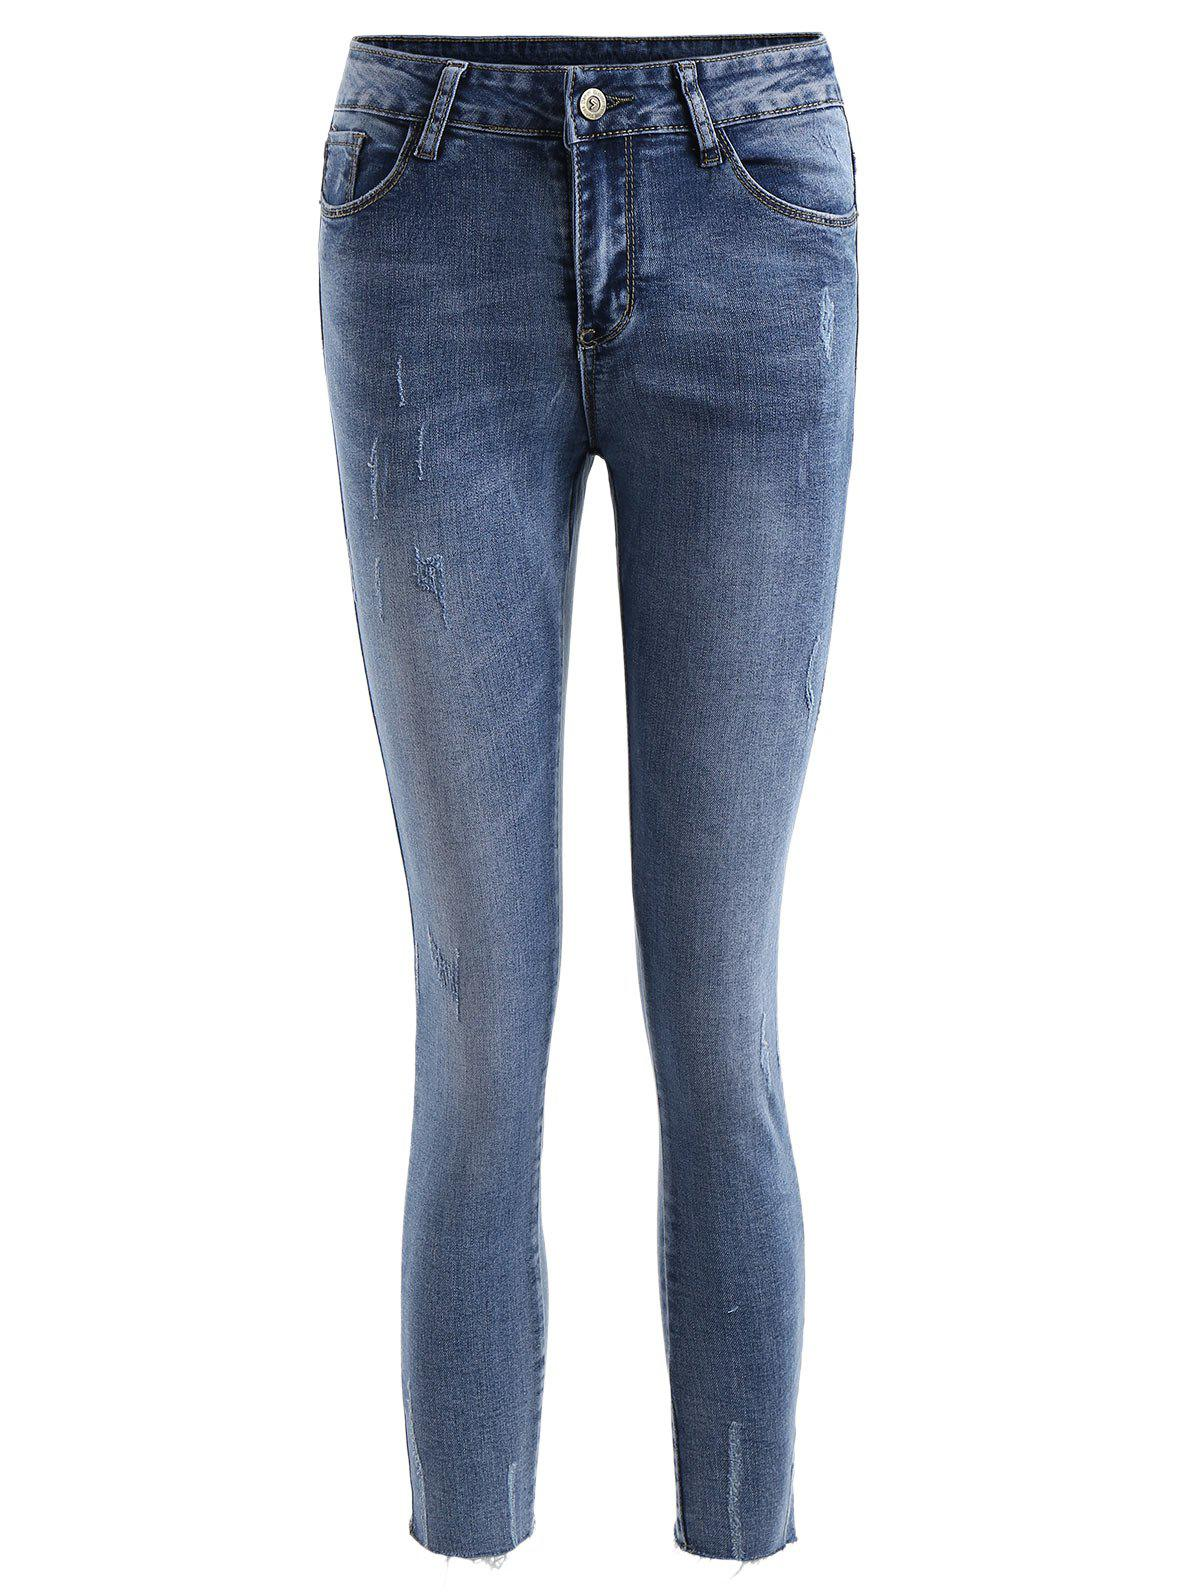 Frayed Distressed Ninth Jeans 259018102